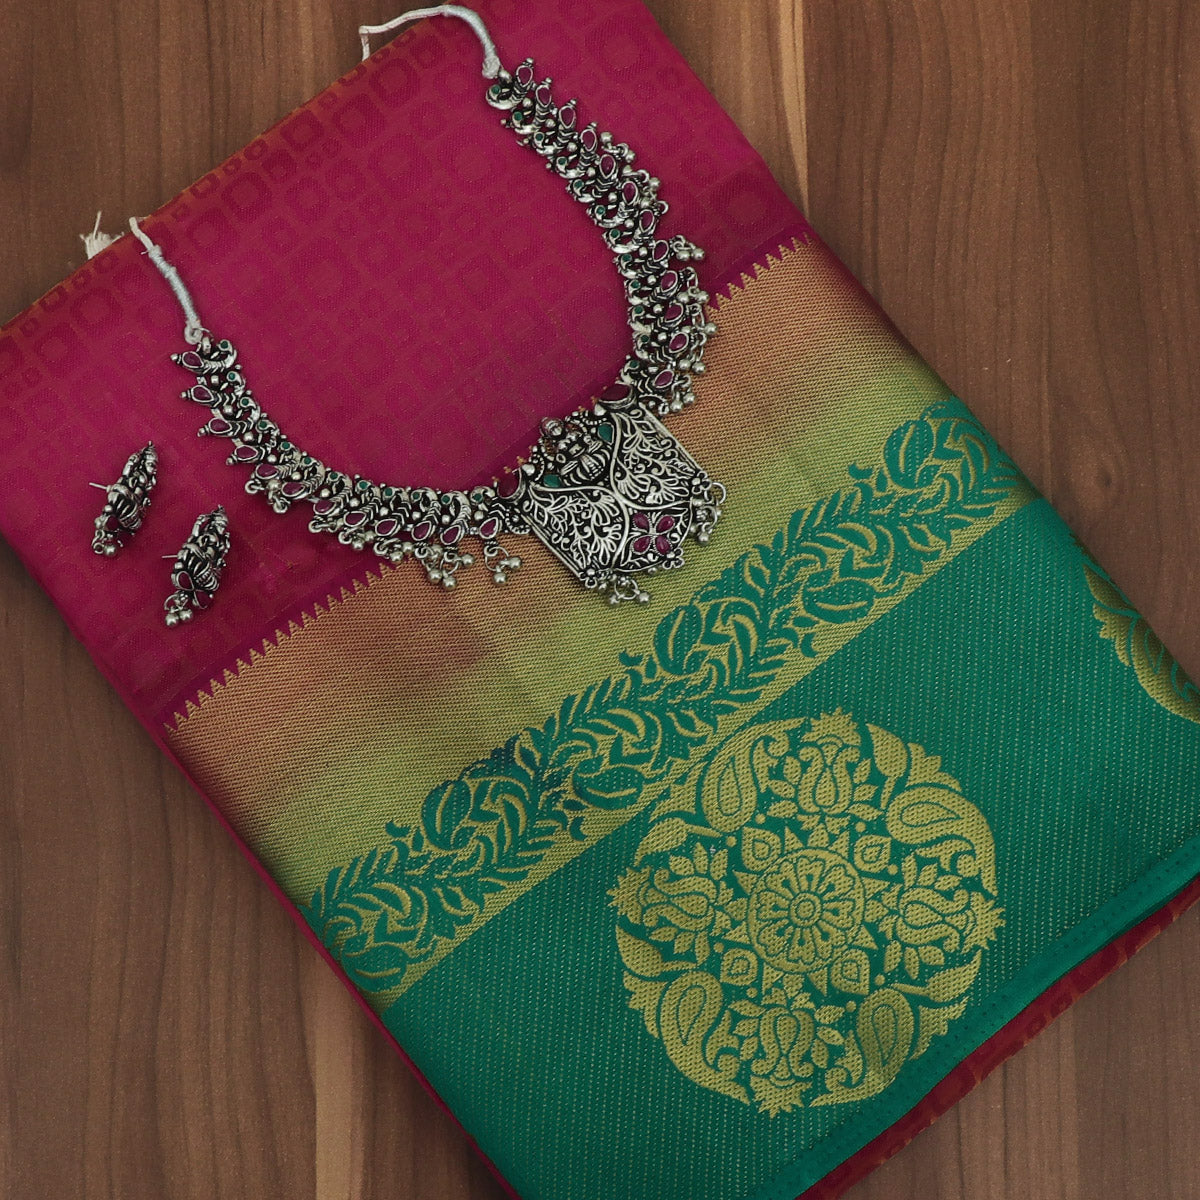 Raw Silk Saree Pink Shade and Green with Round Mango Zari border and jewel